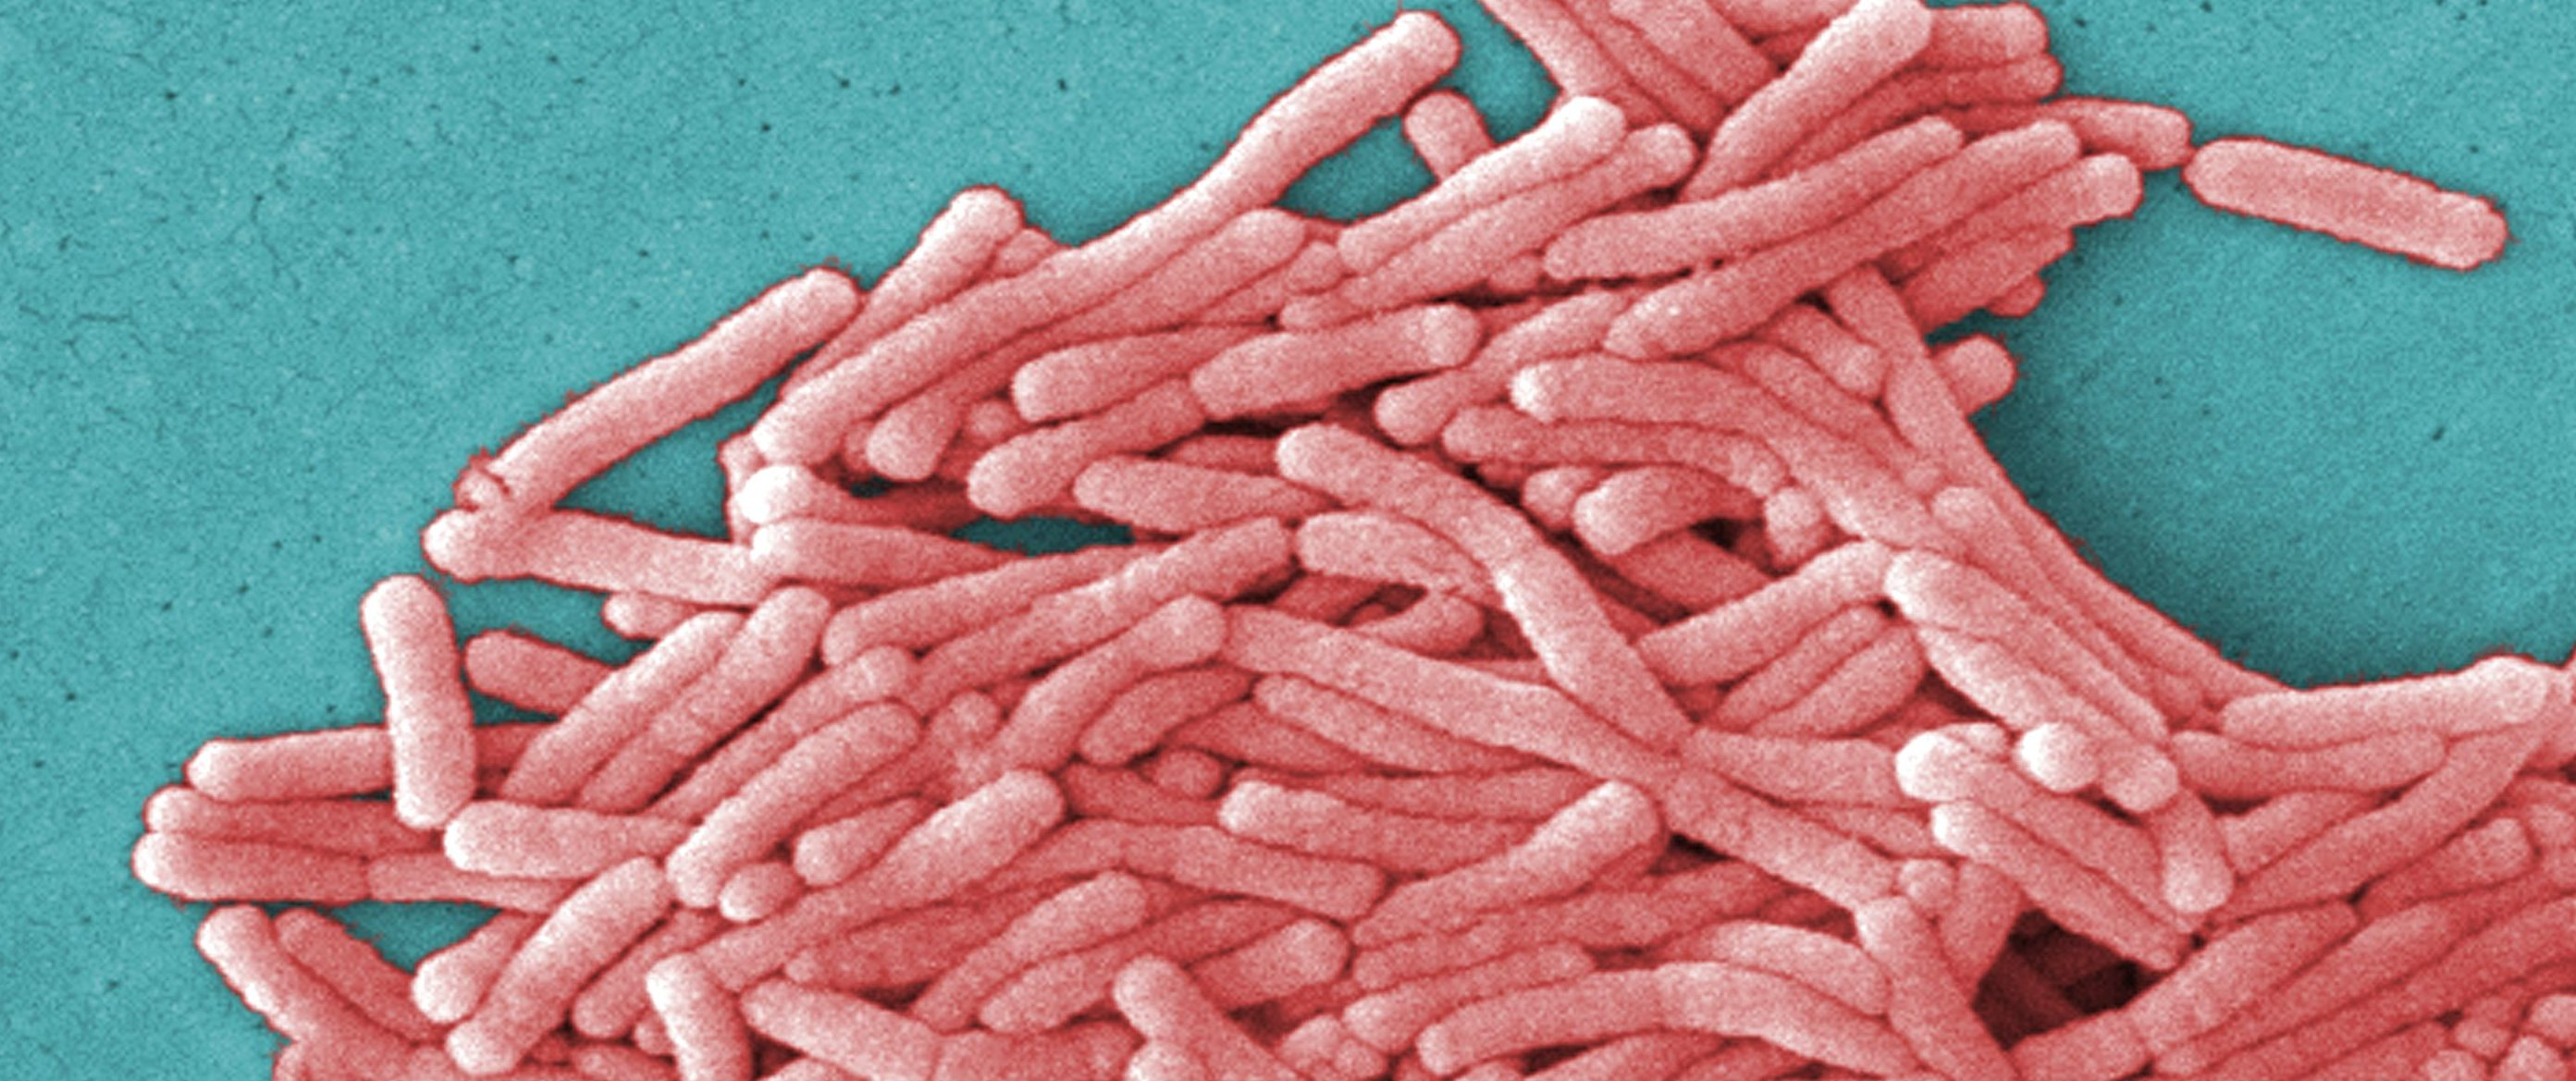 IVHQ hit with 4th Legionnaires' outbreak in 4 years